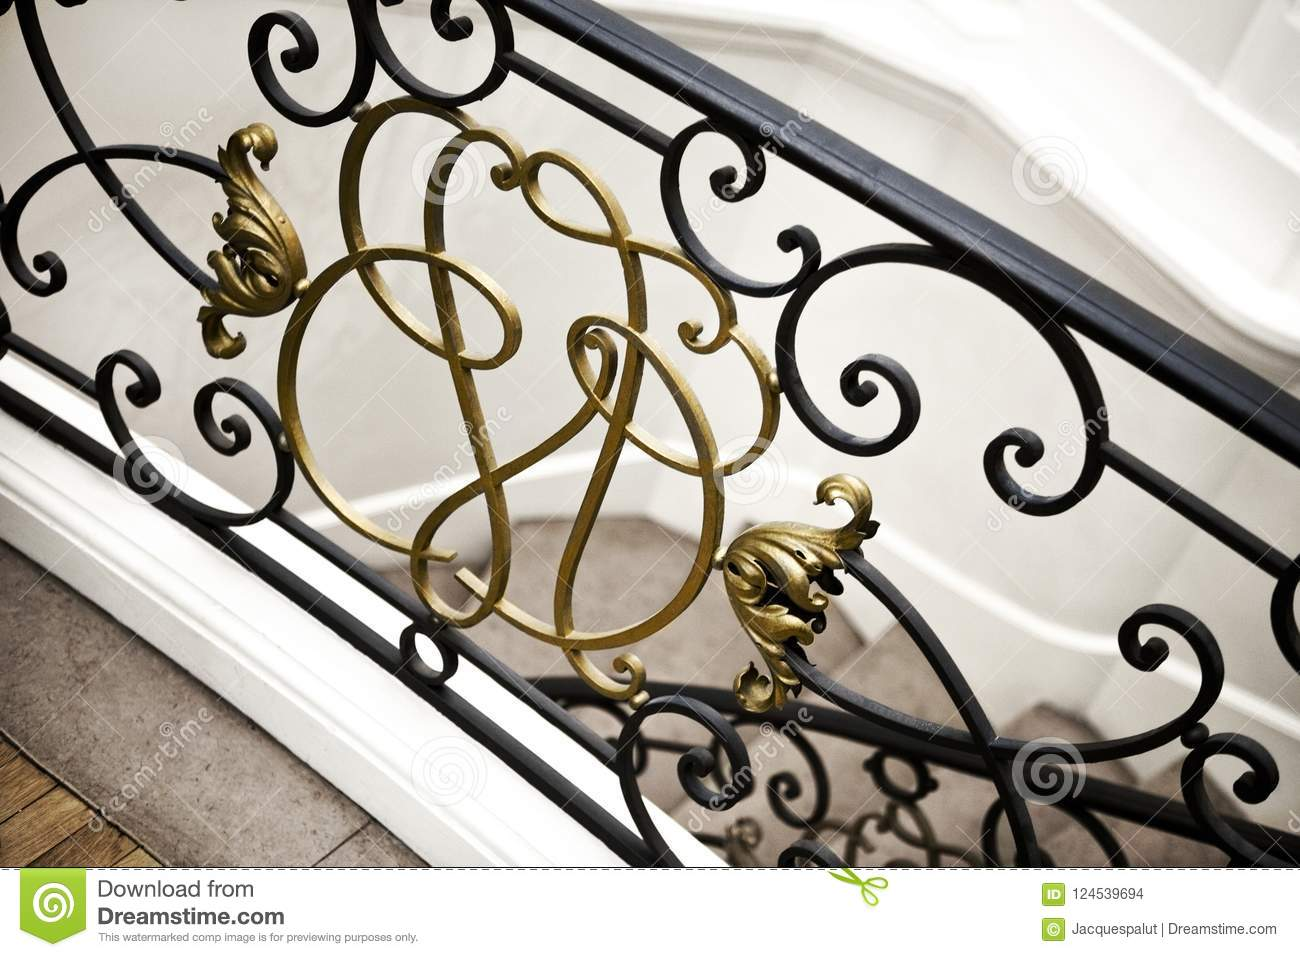 Download Stair Railing Inside A House Stock Photo   Image Of Railing,  Interior: 124539694